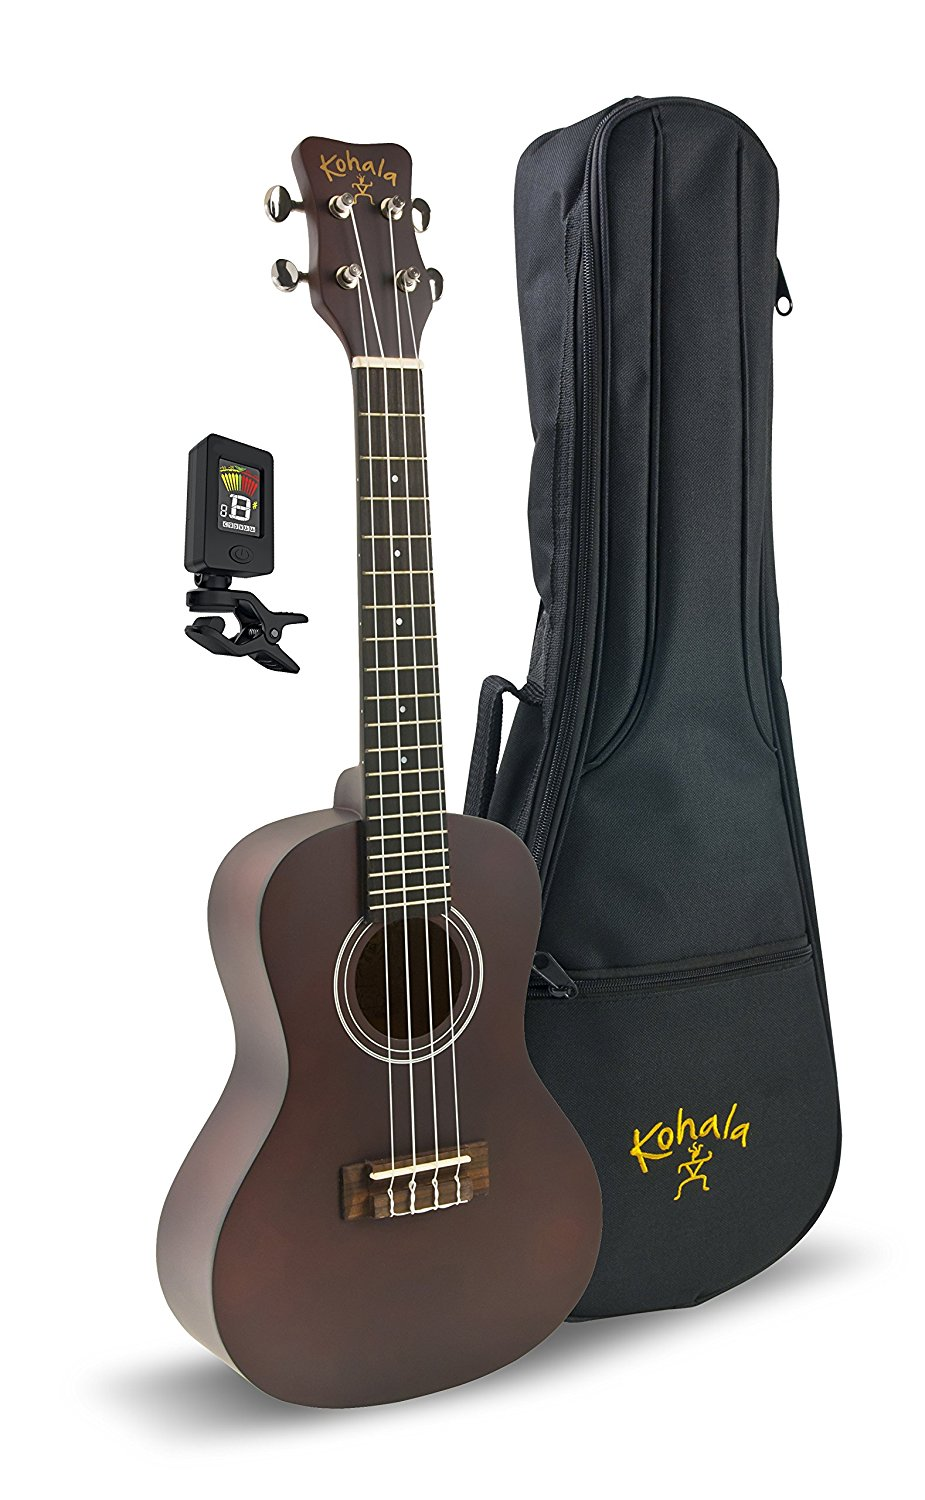 Kohala KPP-C Concert Ukulele Bundle Package